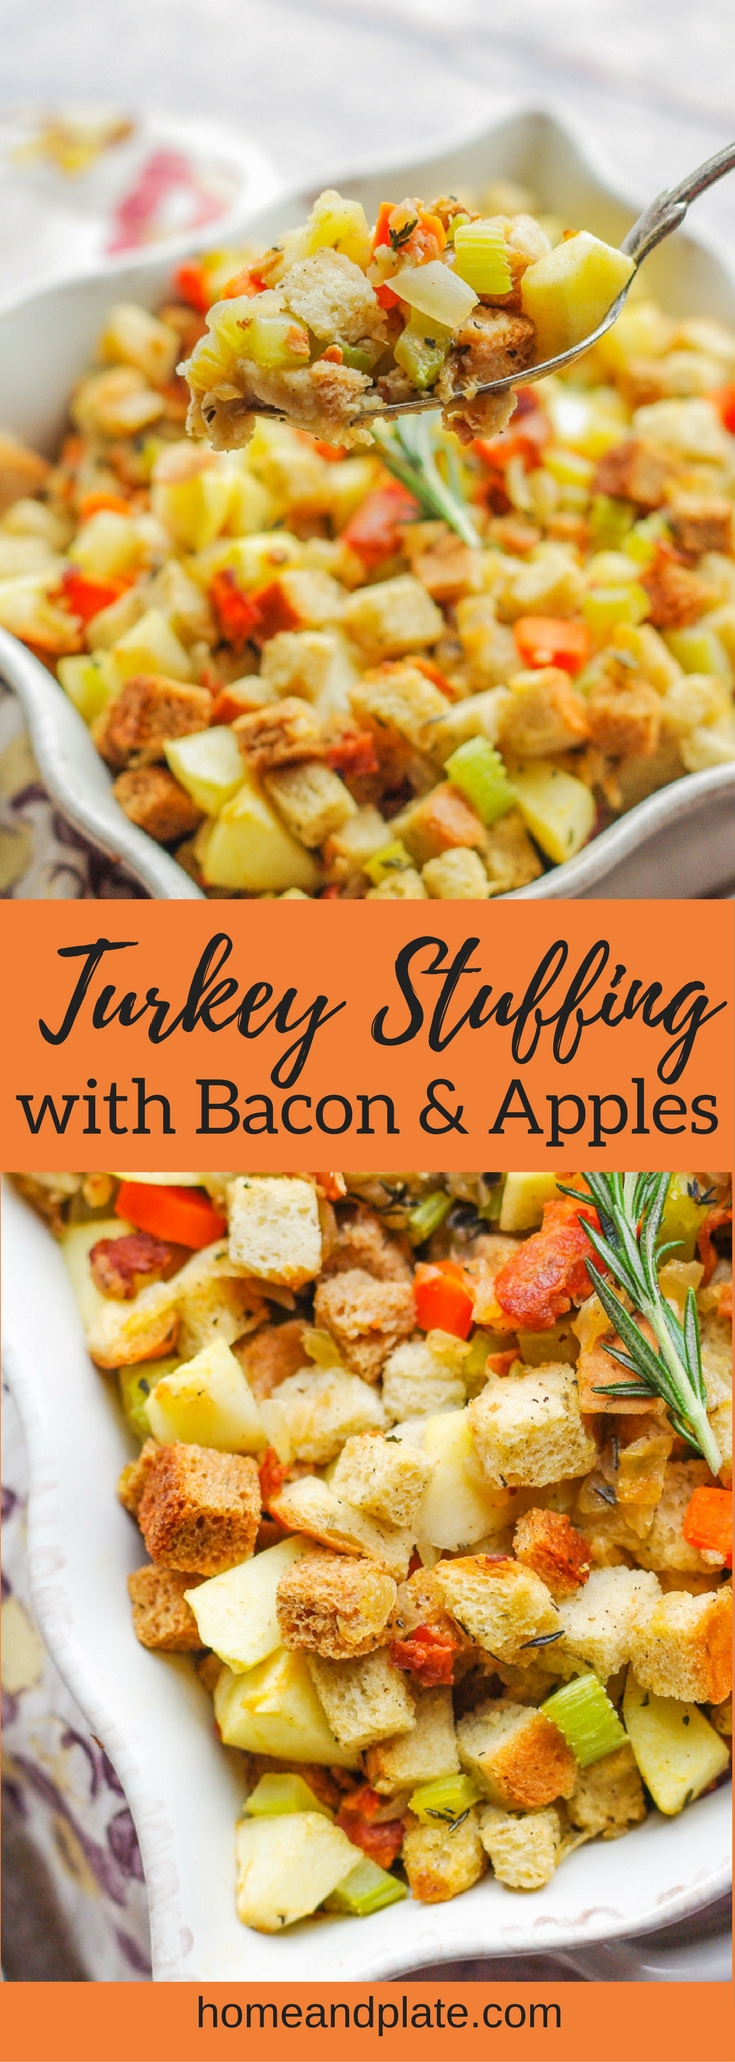 Turkey Stuffing with Apples and Bacon | www.homeandplate.com | Homemade turkey stuffing with sweet apples and salty bacon is a classic side dish that belongs on any holiday table.  #thanksgiving #stuffing #dressing